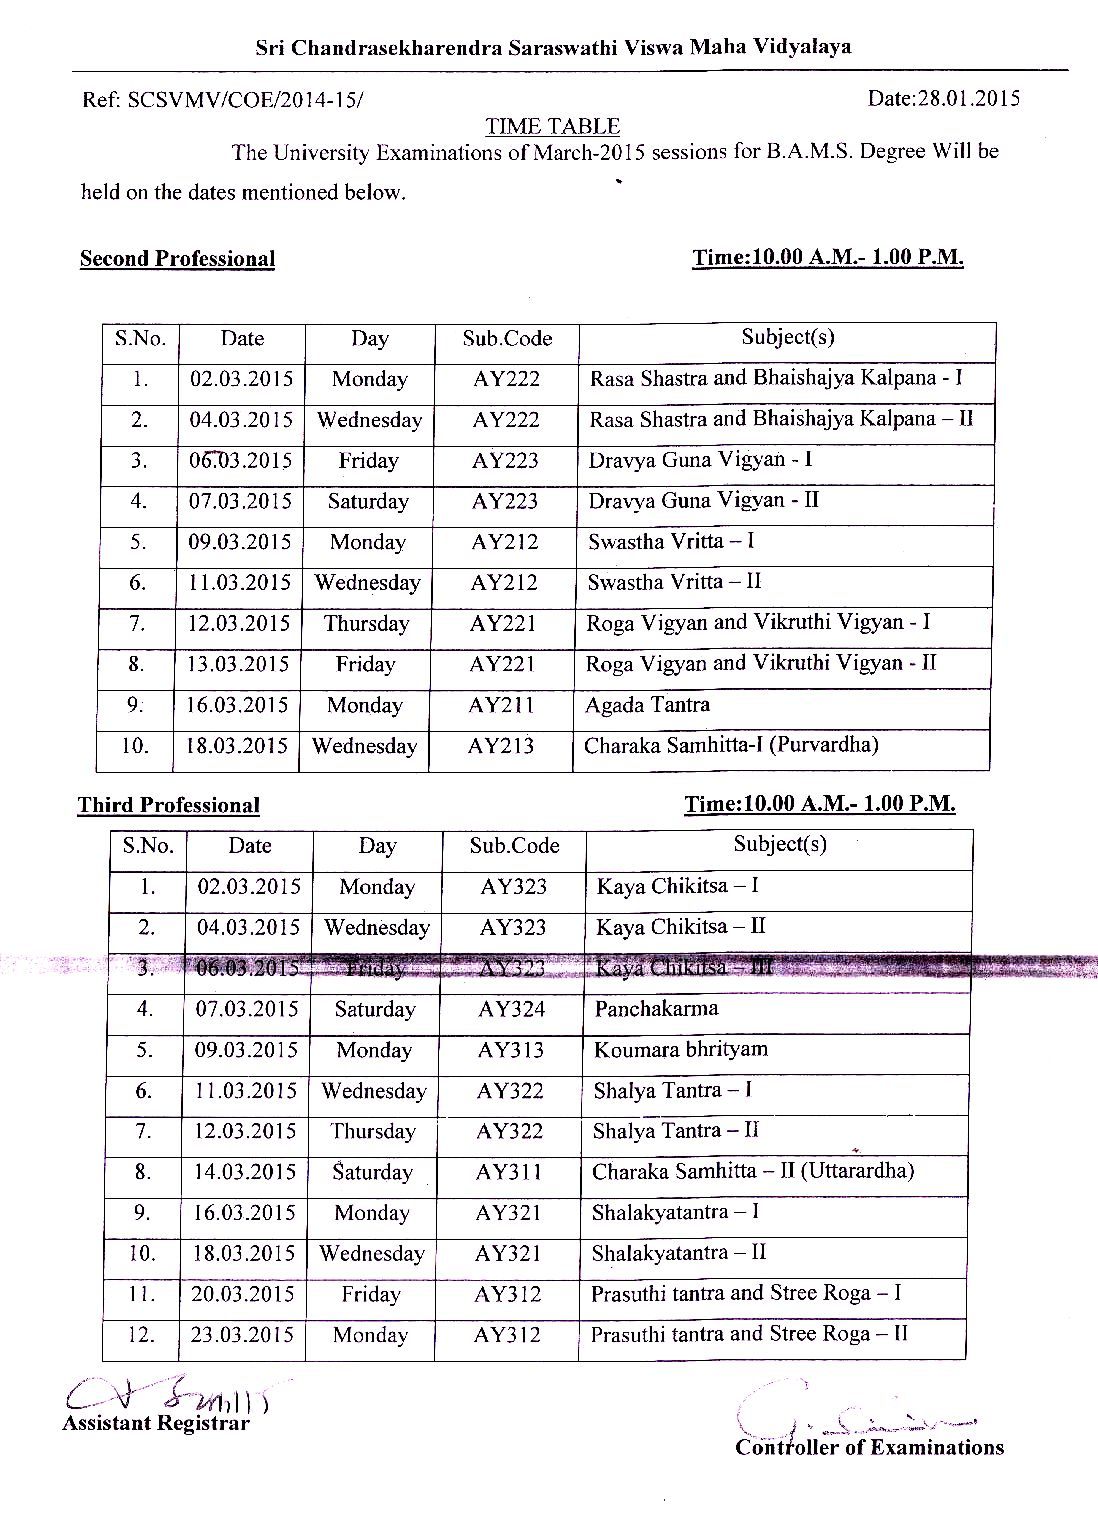 March 2015 session bams university examination time table for Tekerala org time table 2015